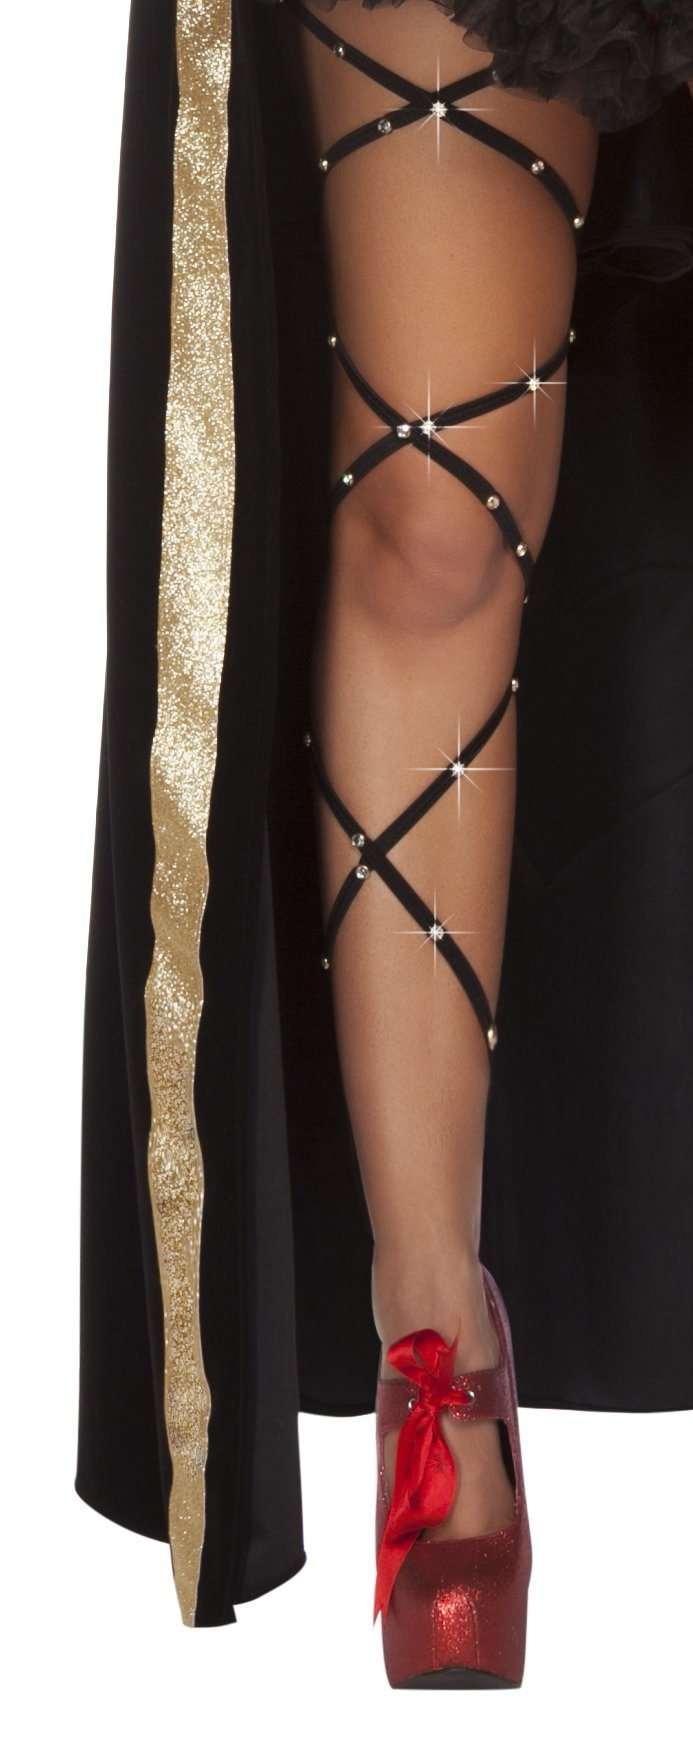 Rhinestone Thigh Wrap - PlaythingsMiami